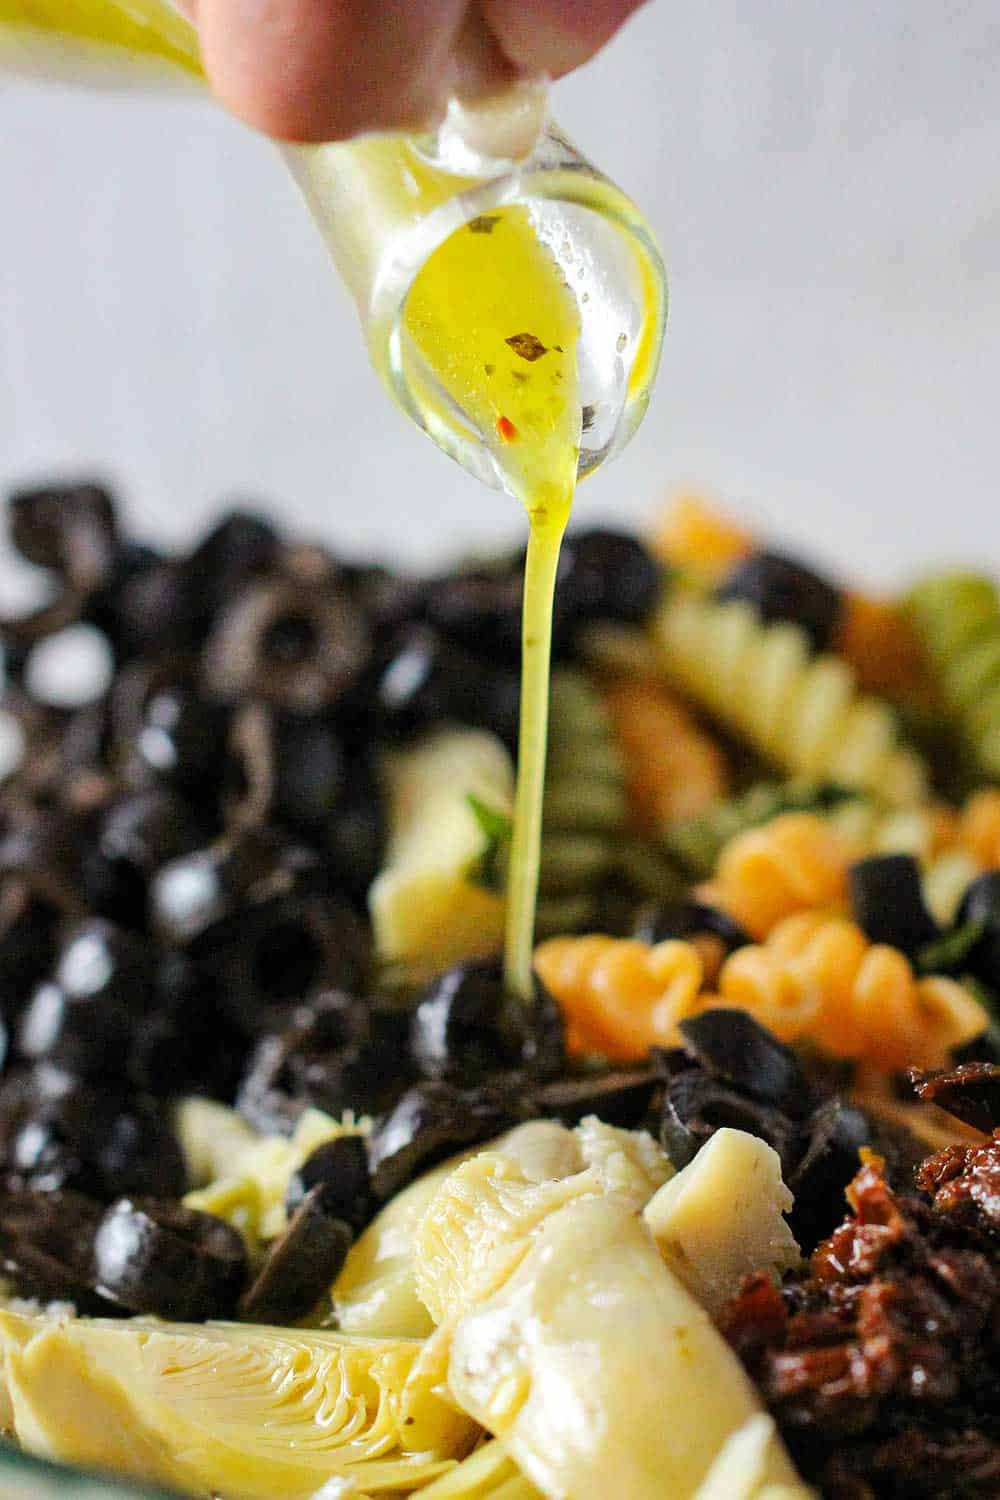 Italian dressing being pour onto a pasta salad with artichokes and black olives.